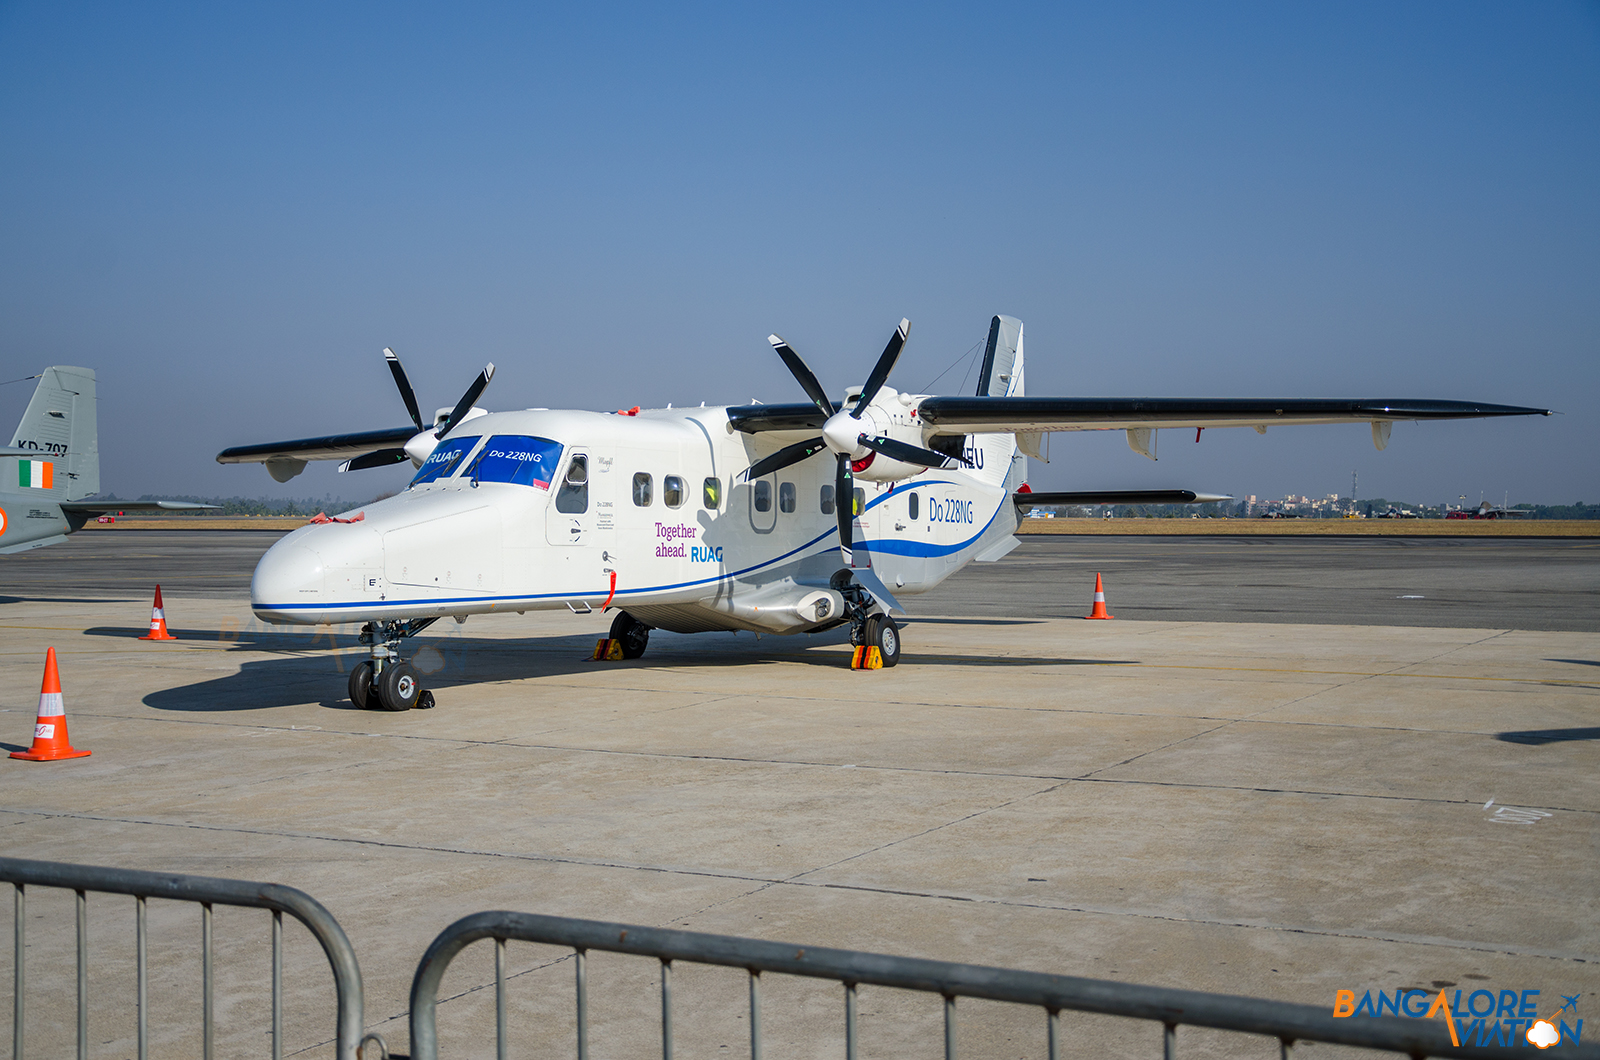 aero a photo essay bangalore aviation dornier do 228 ng